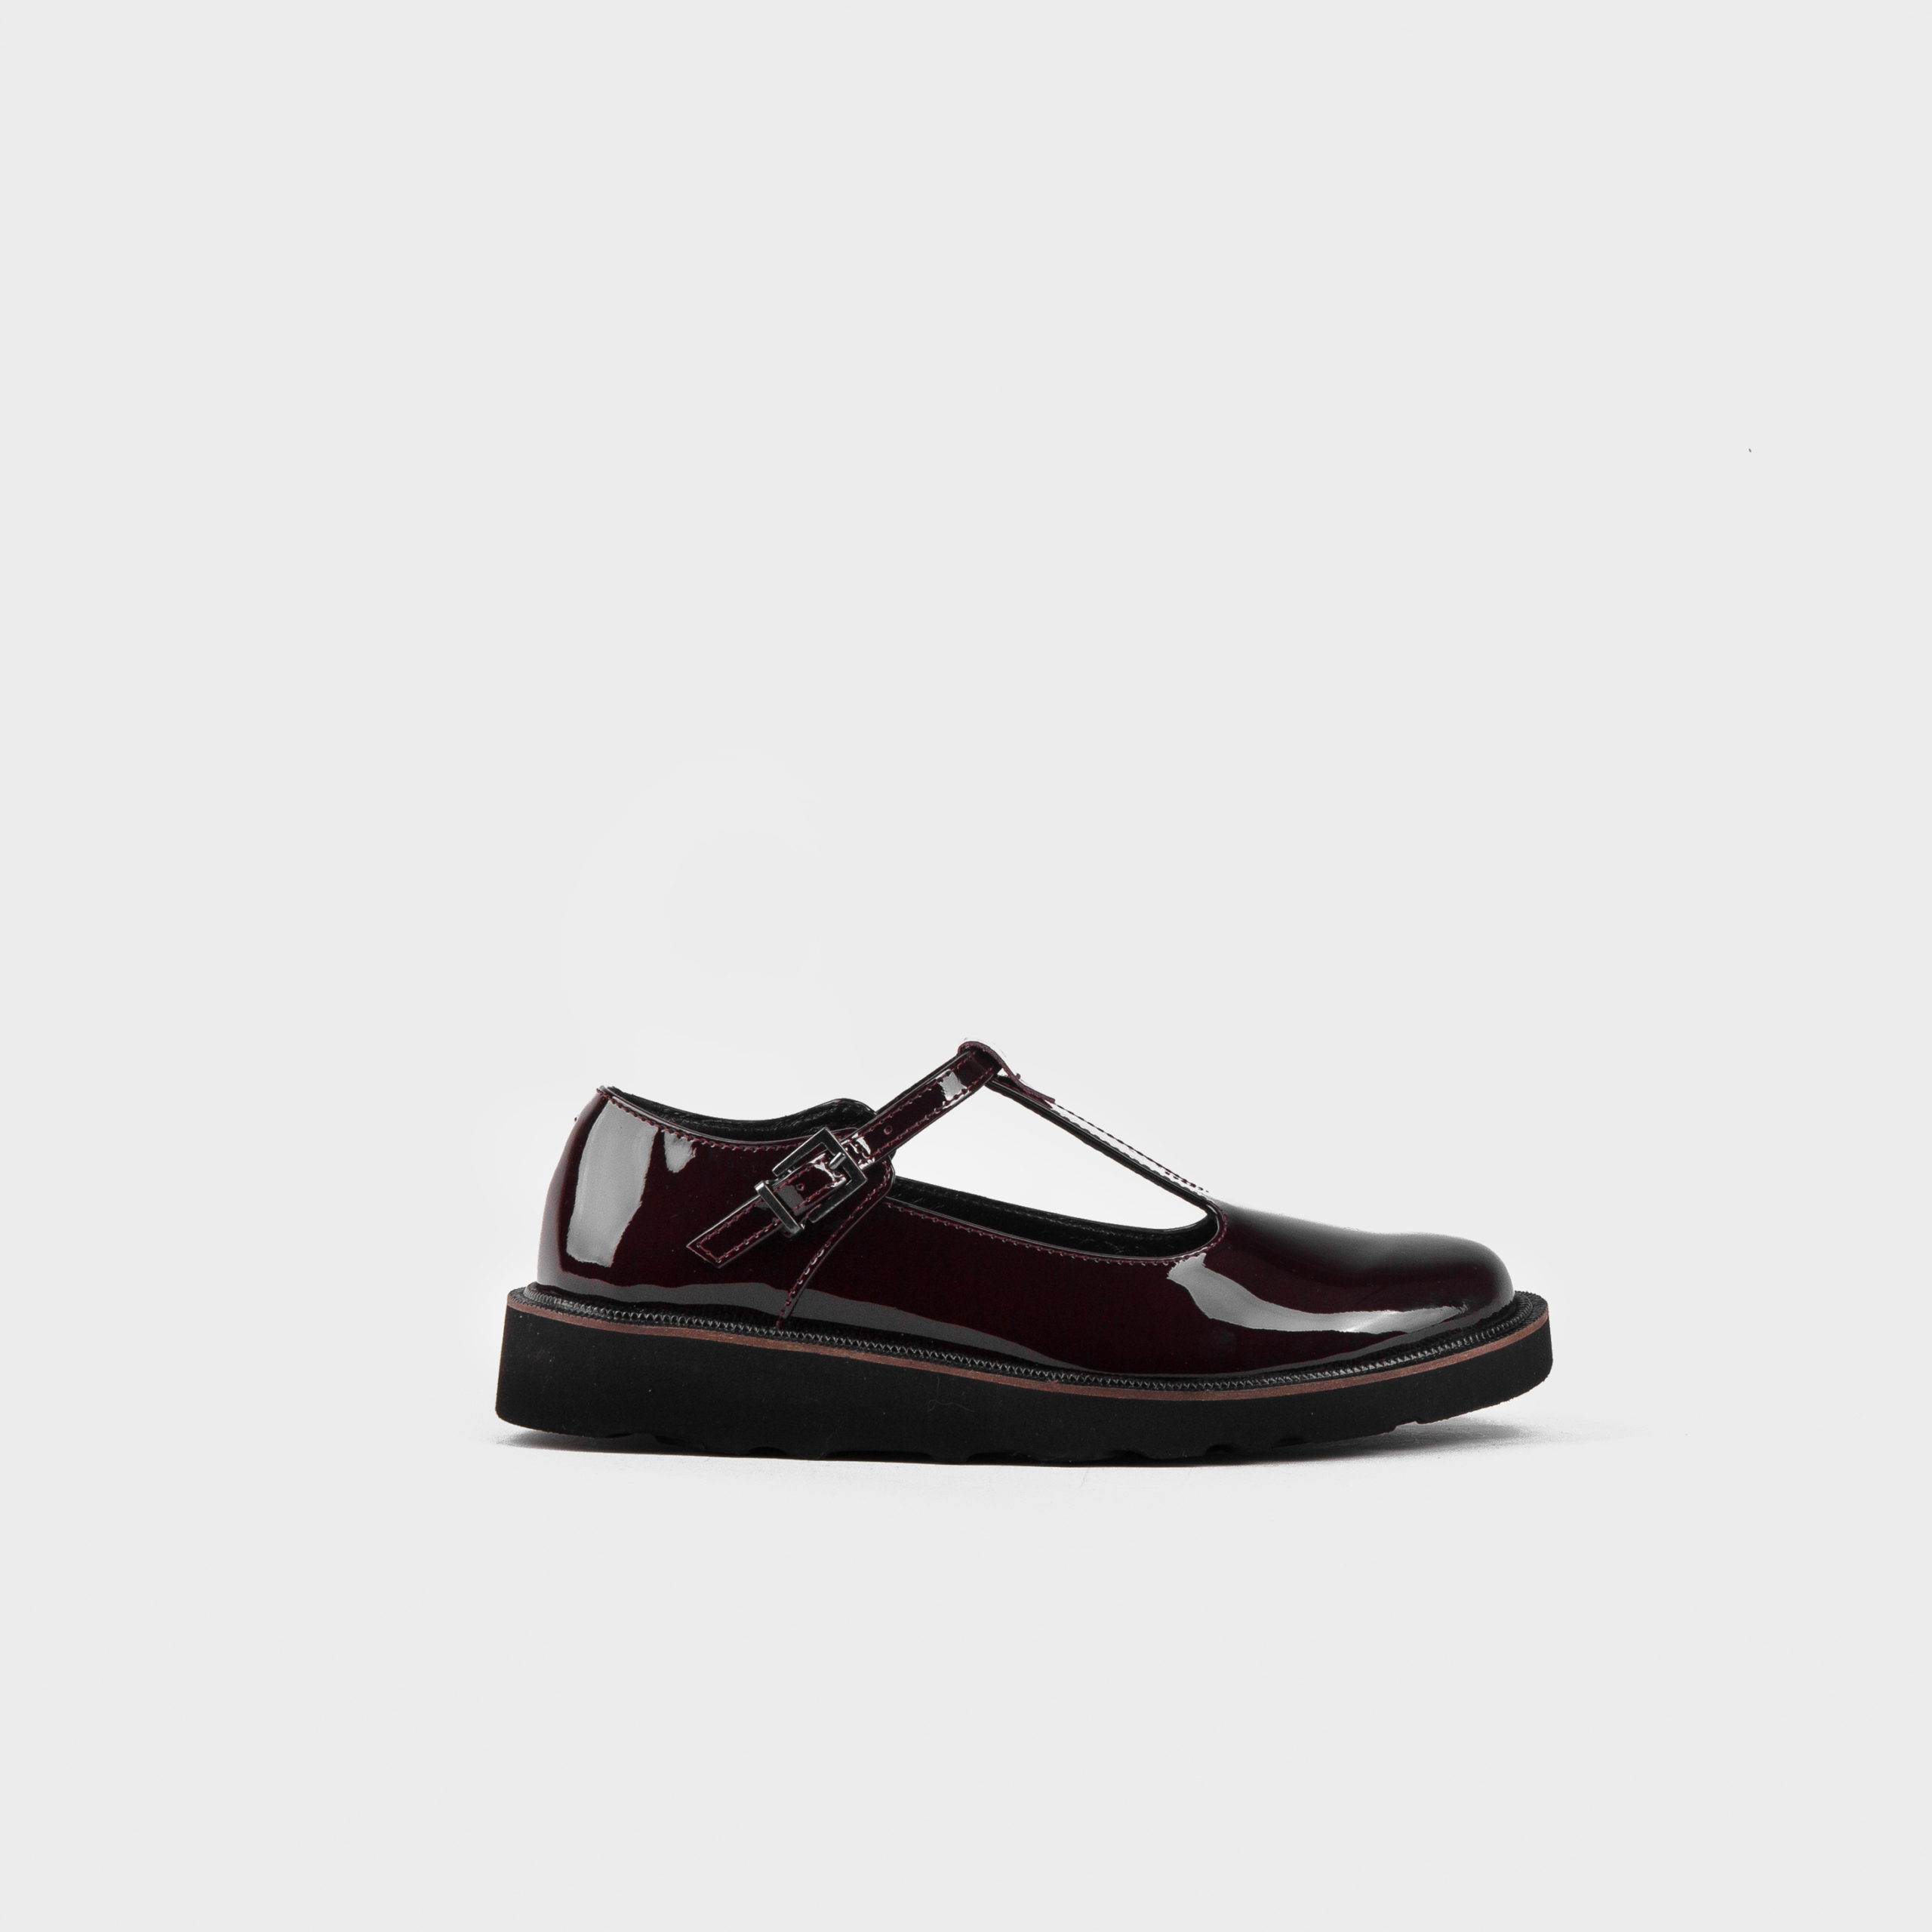 Mary-Janes-burgundy-patent-leather